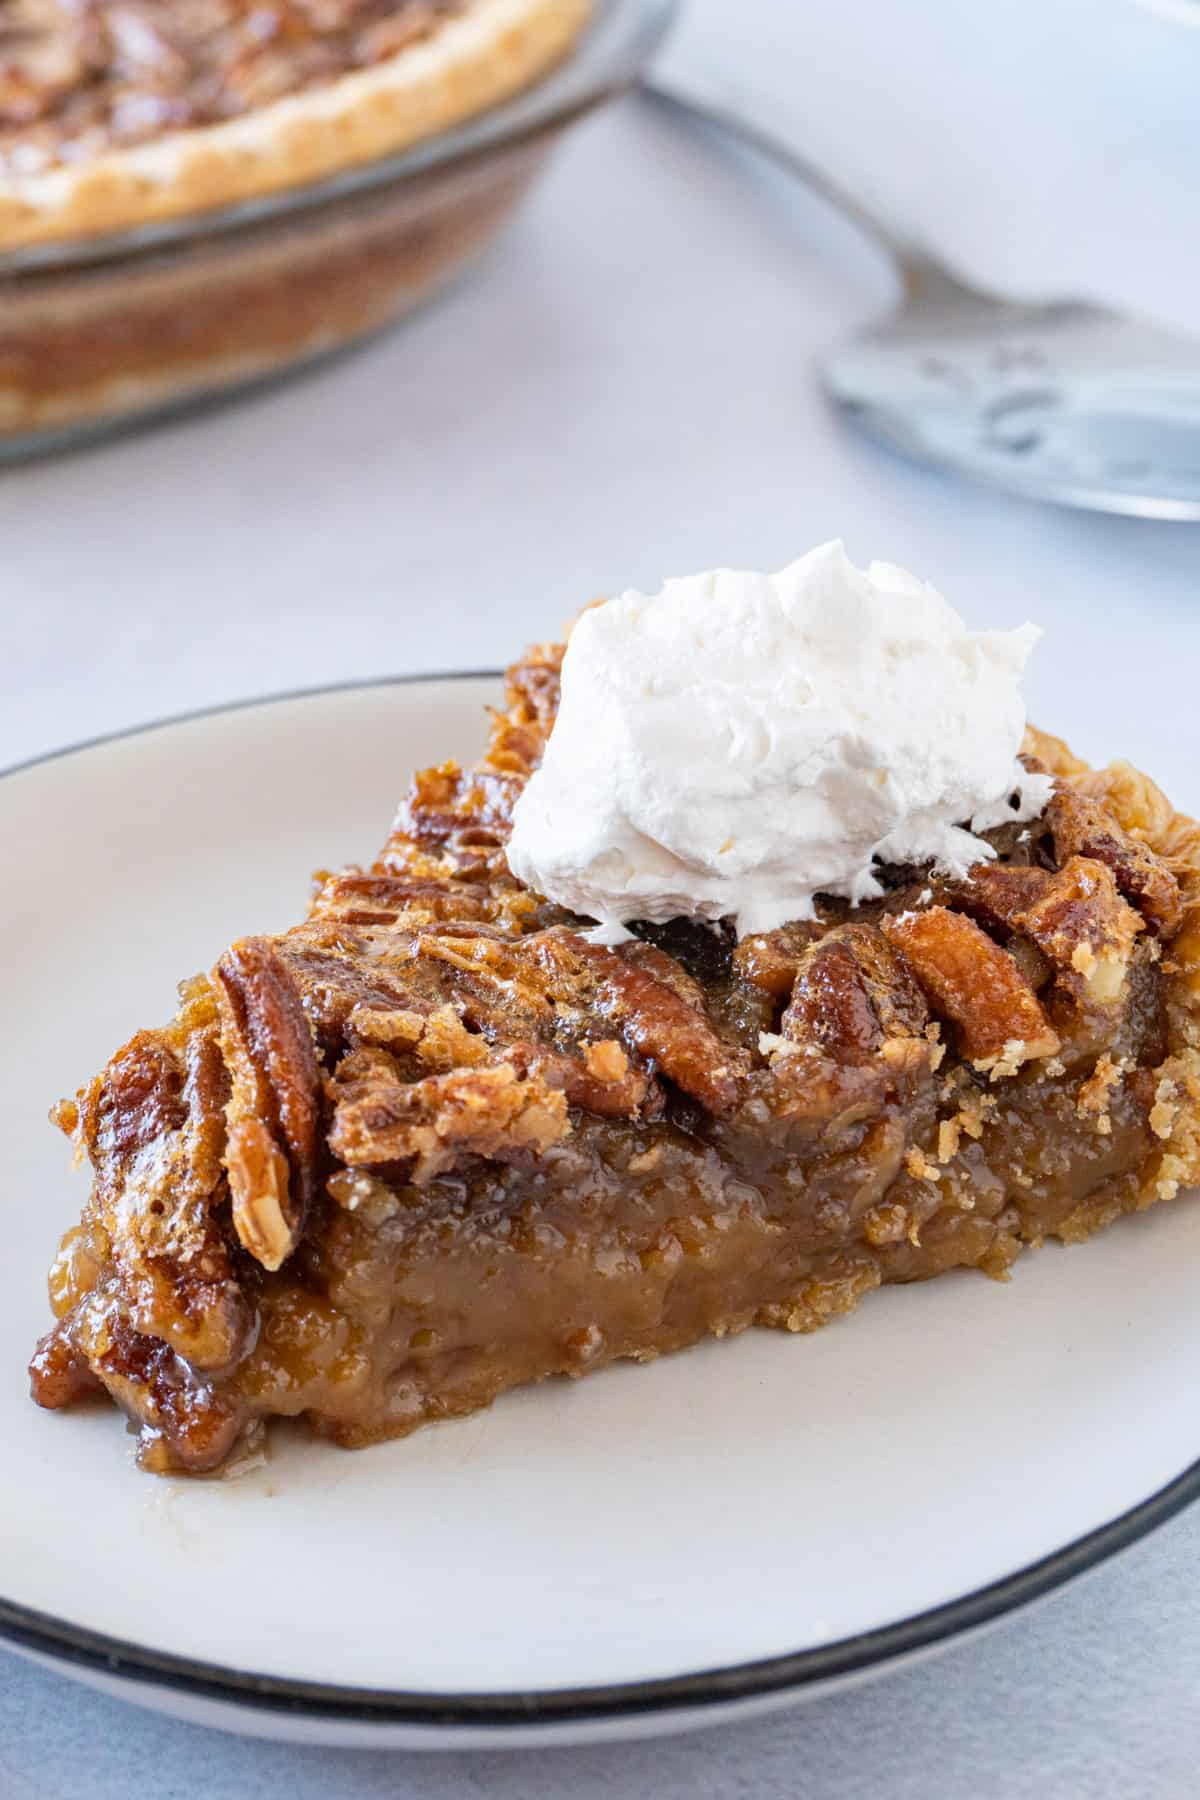 slice of pecan pie on plate with whipped cream